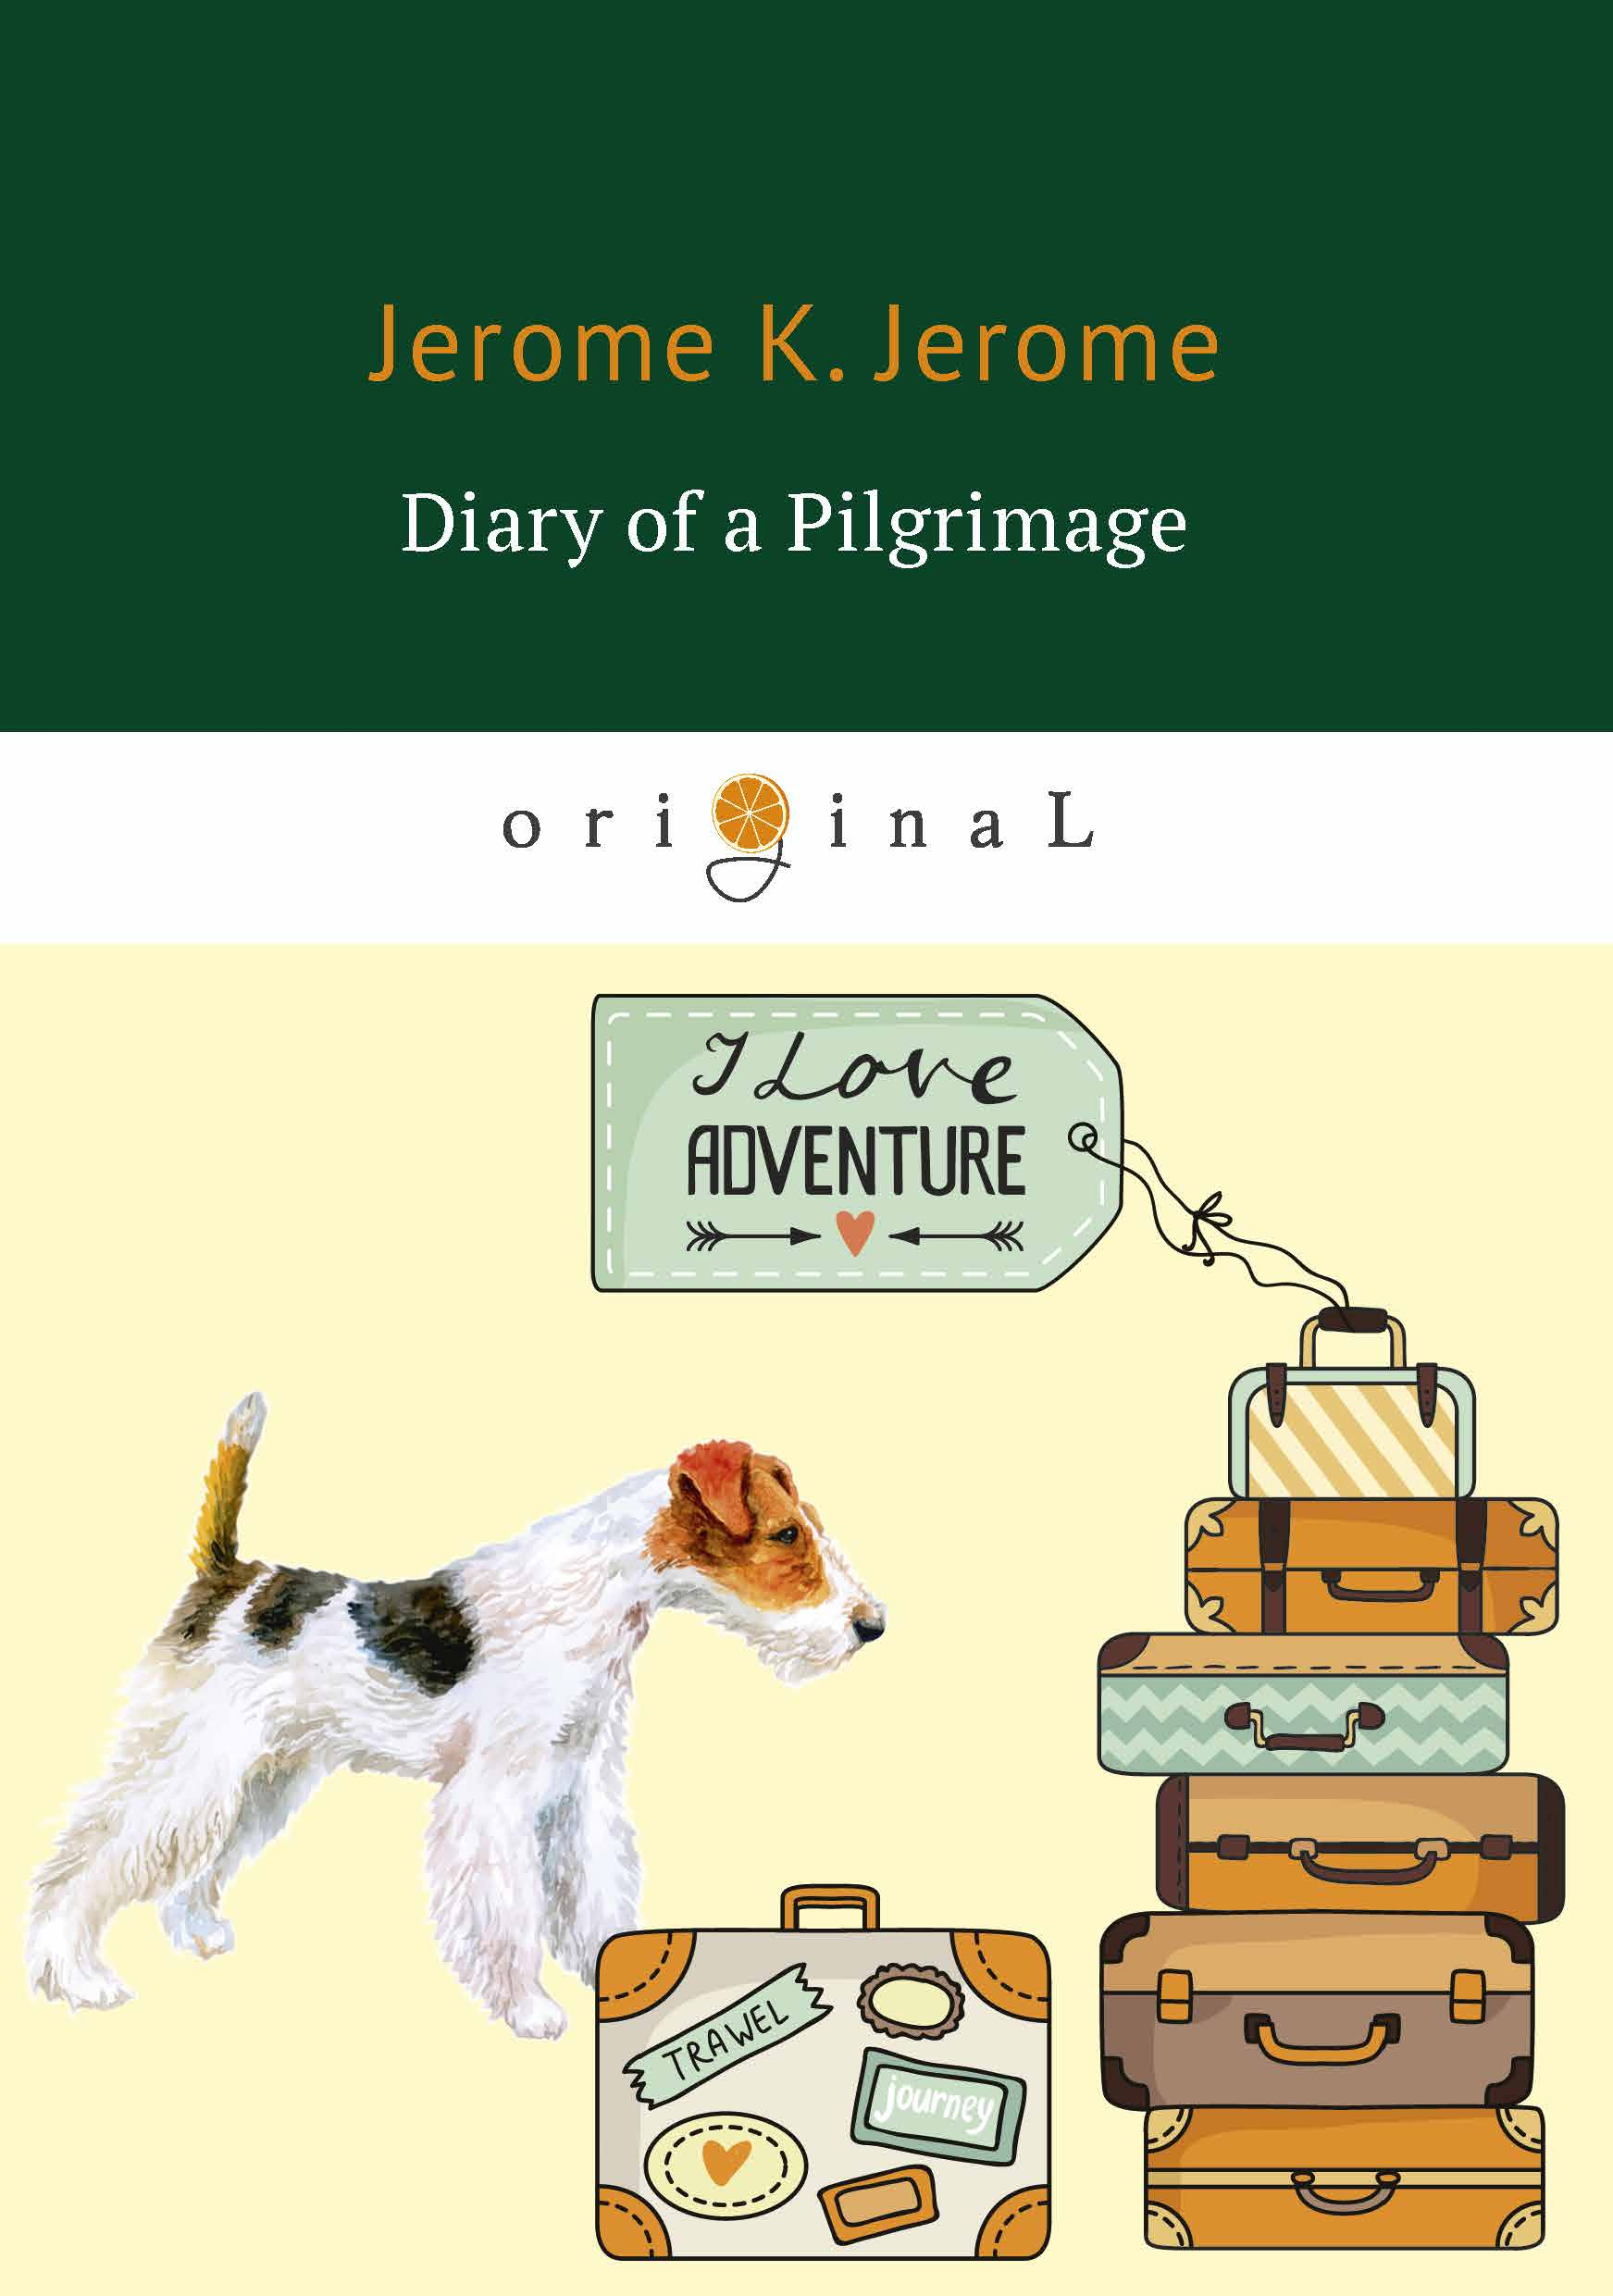 цена Jerome K. Jerome Diary of a Pilgrimage ISBN: 978-5-521-07081-7